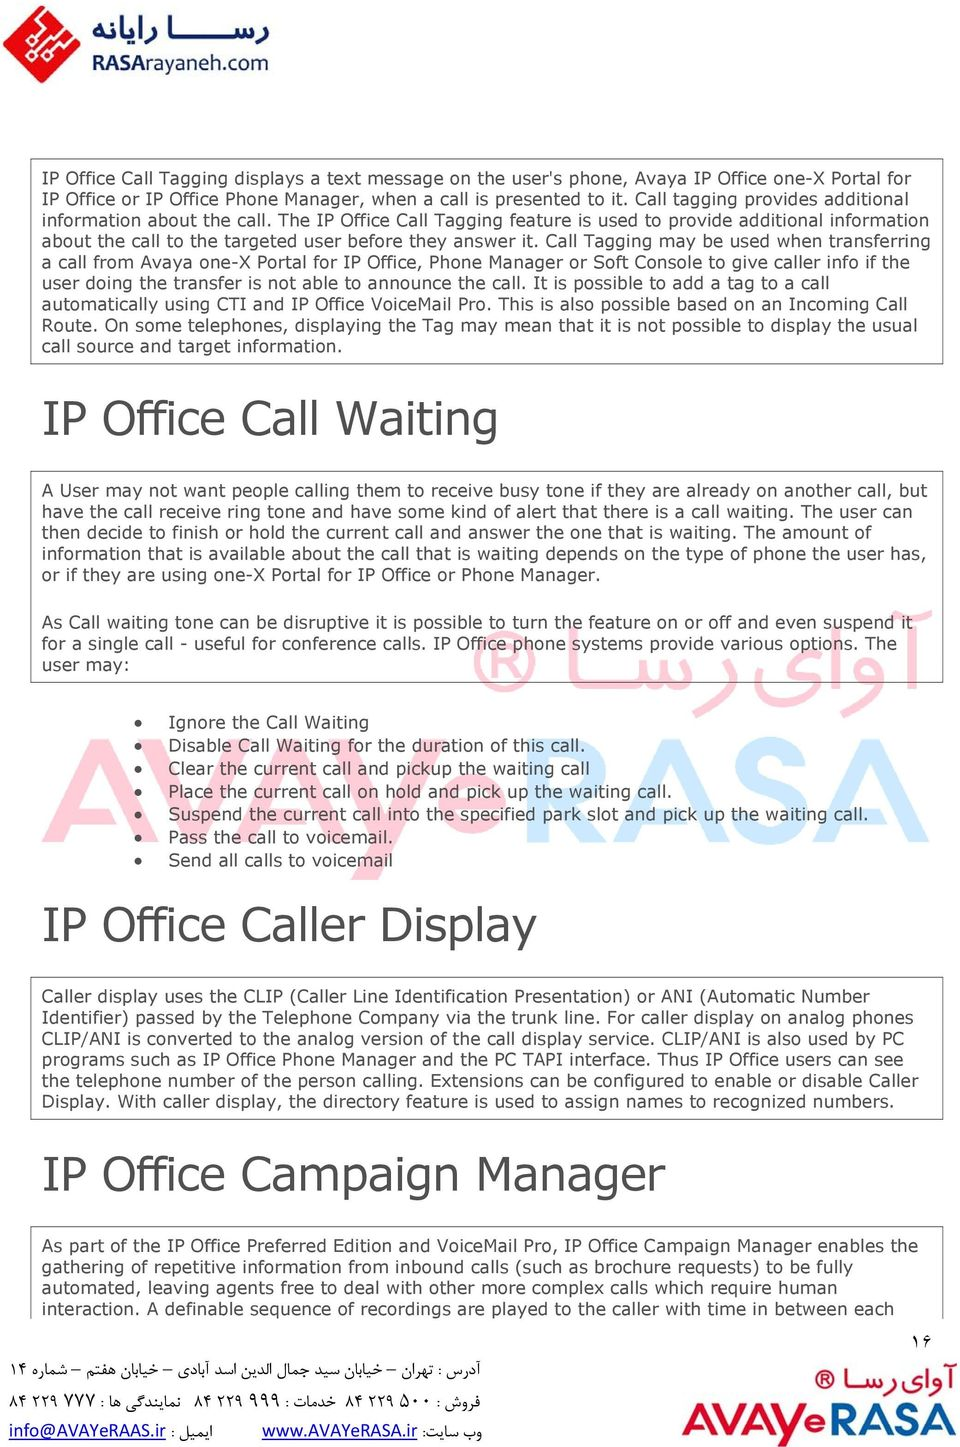 Call Tagging may be used when transferring a call from Avaya one-x Portal for IP Office, Phone Manager or Soft Console to give caller info if the user doing the transfer is not able to announce the